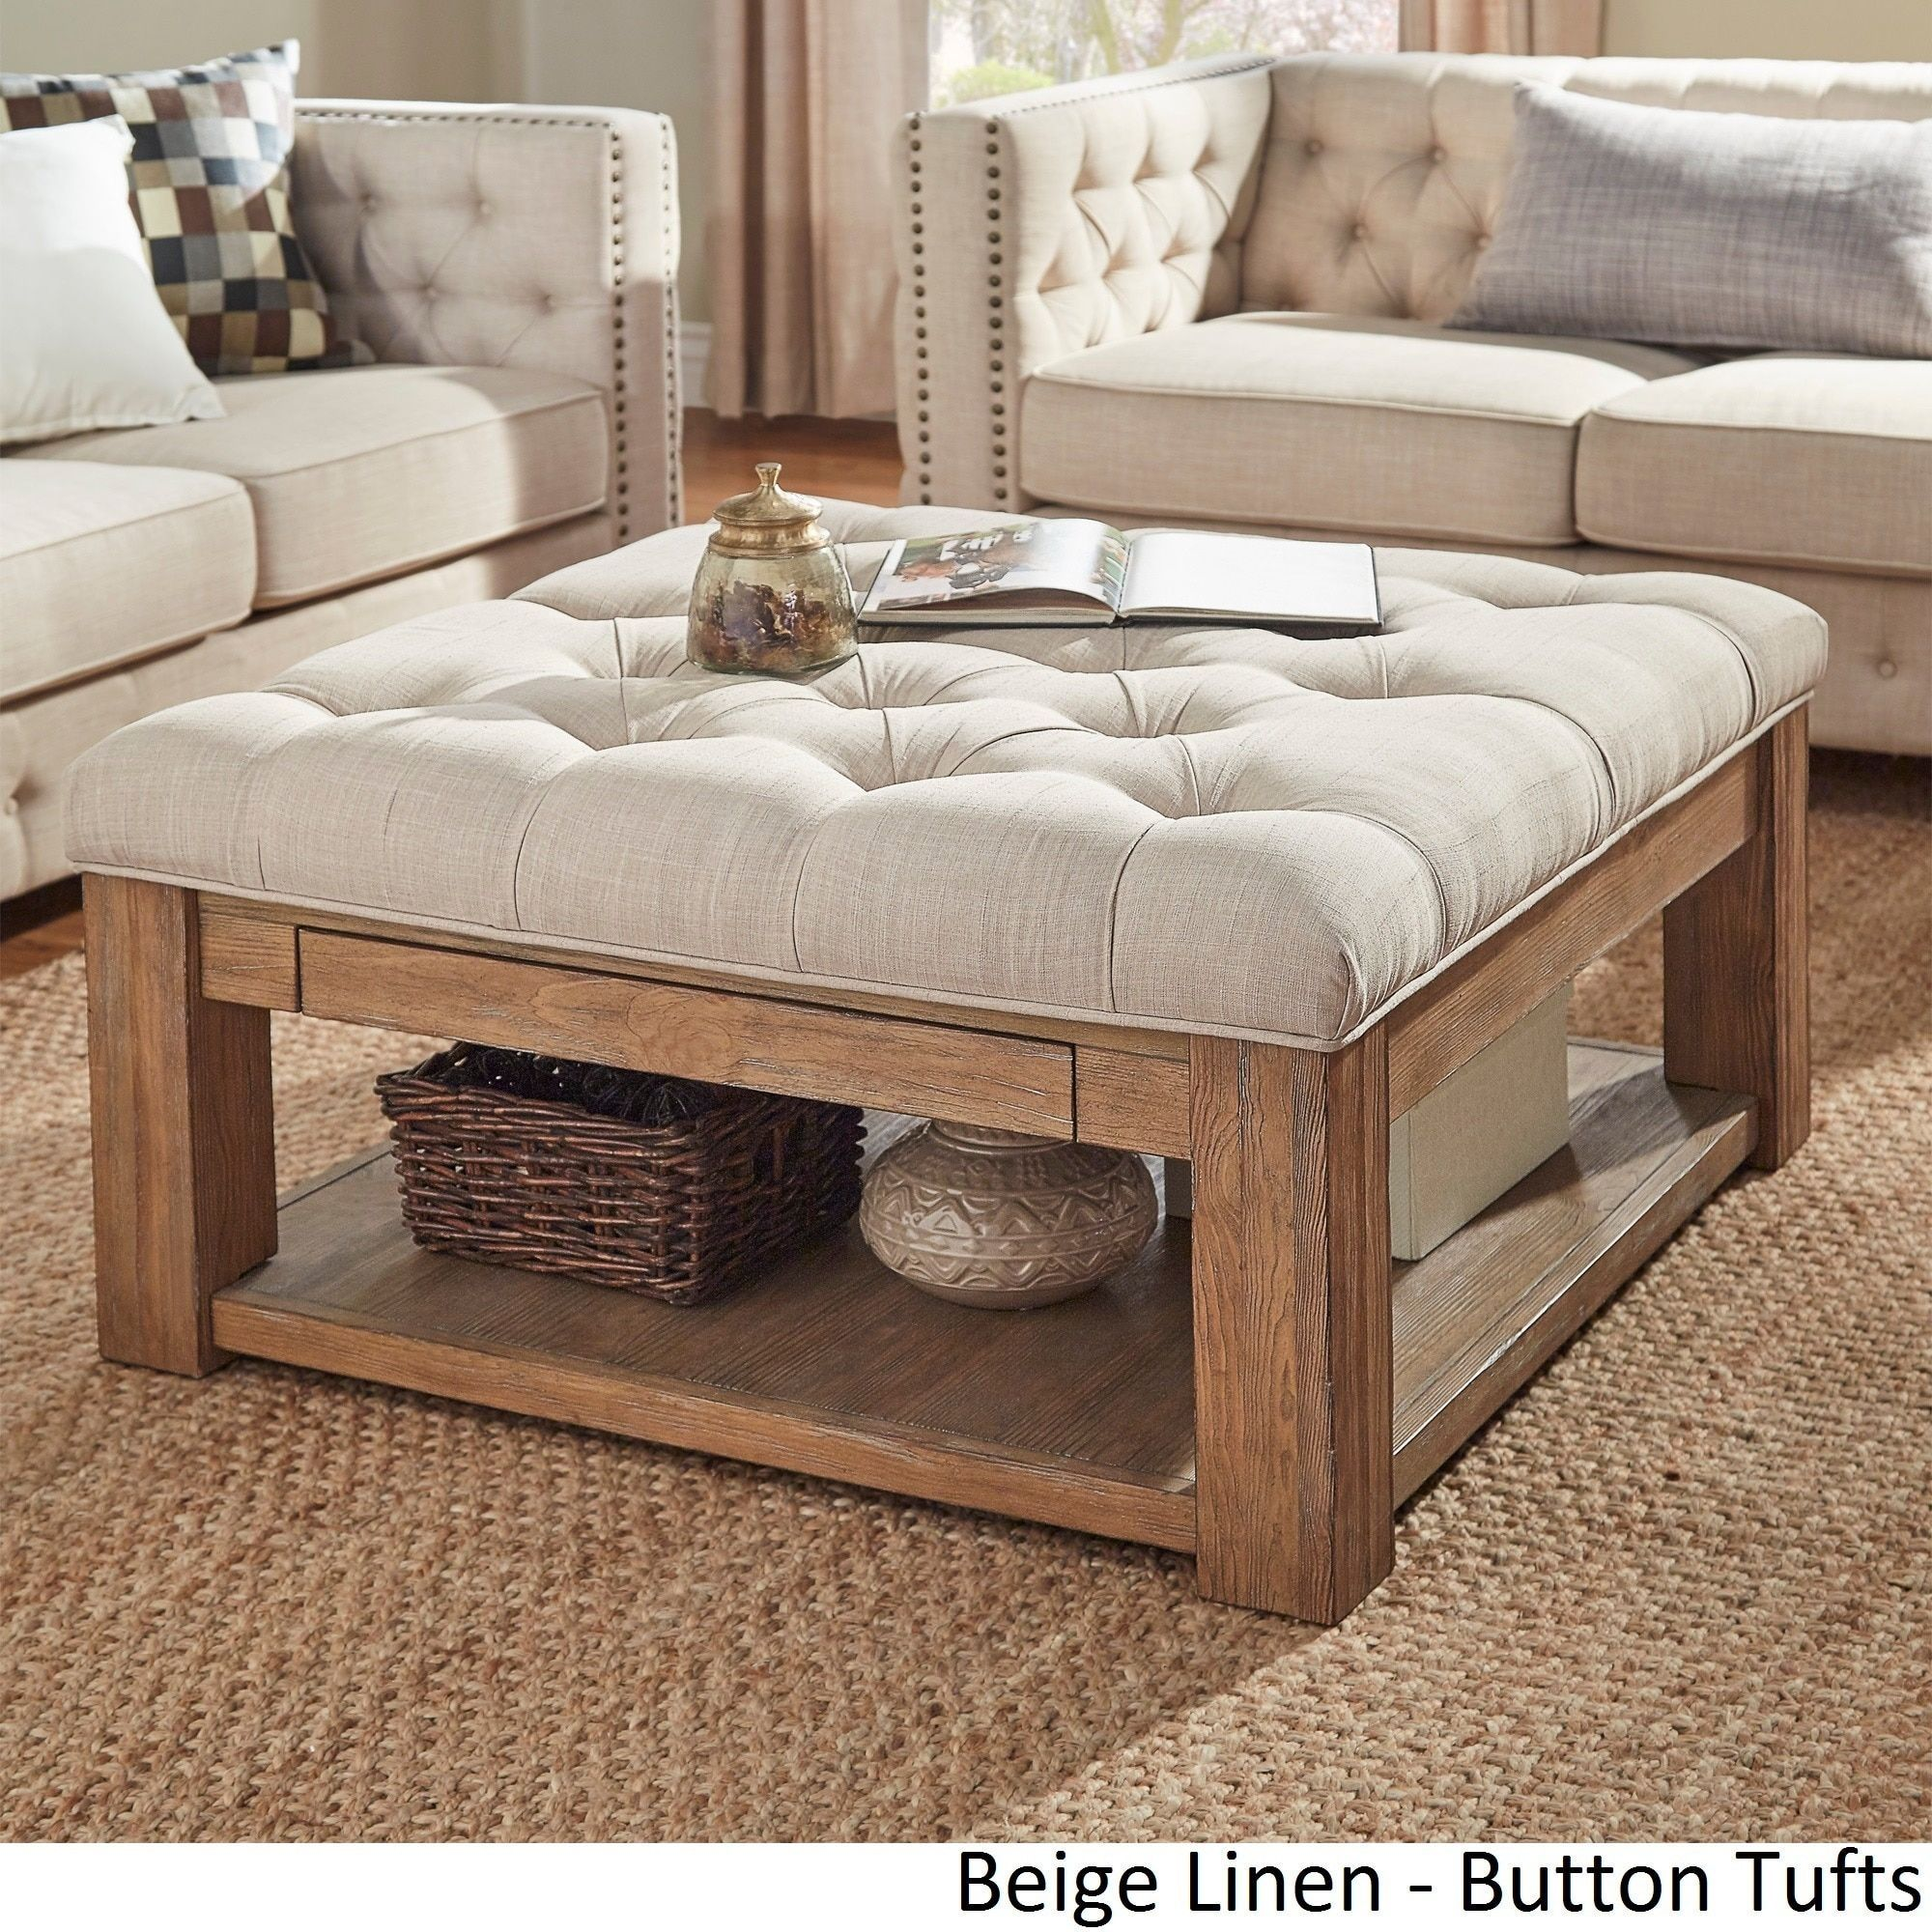 Lennon Pine Square Storage Ottoman Coffee Table By INSPIRE Q Artisan  ([Beige Linen]  Button Tufts) (Fabric)